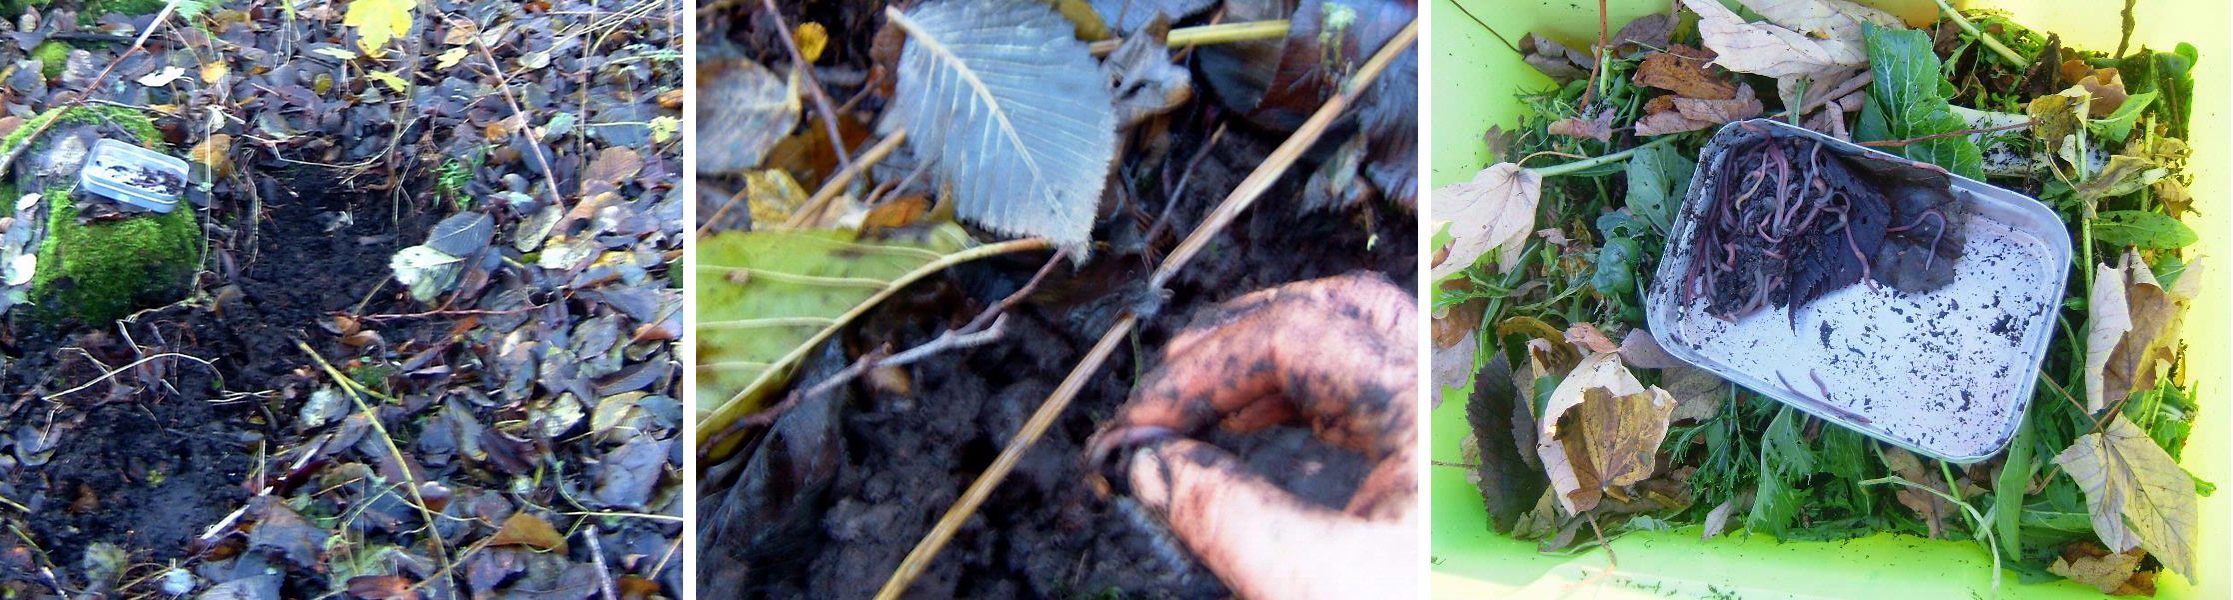 Worm composting - Step 1 to 3